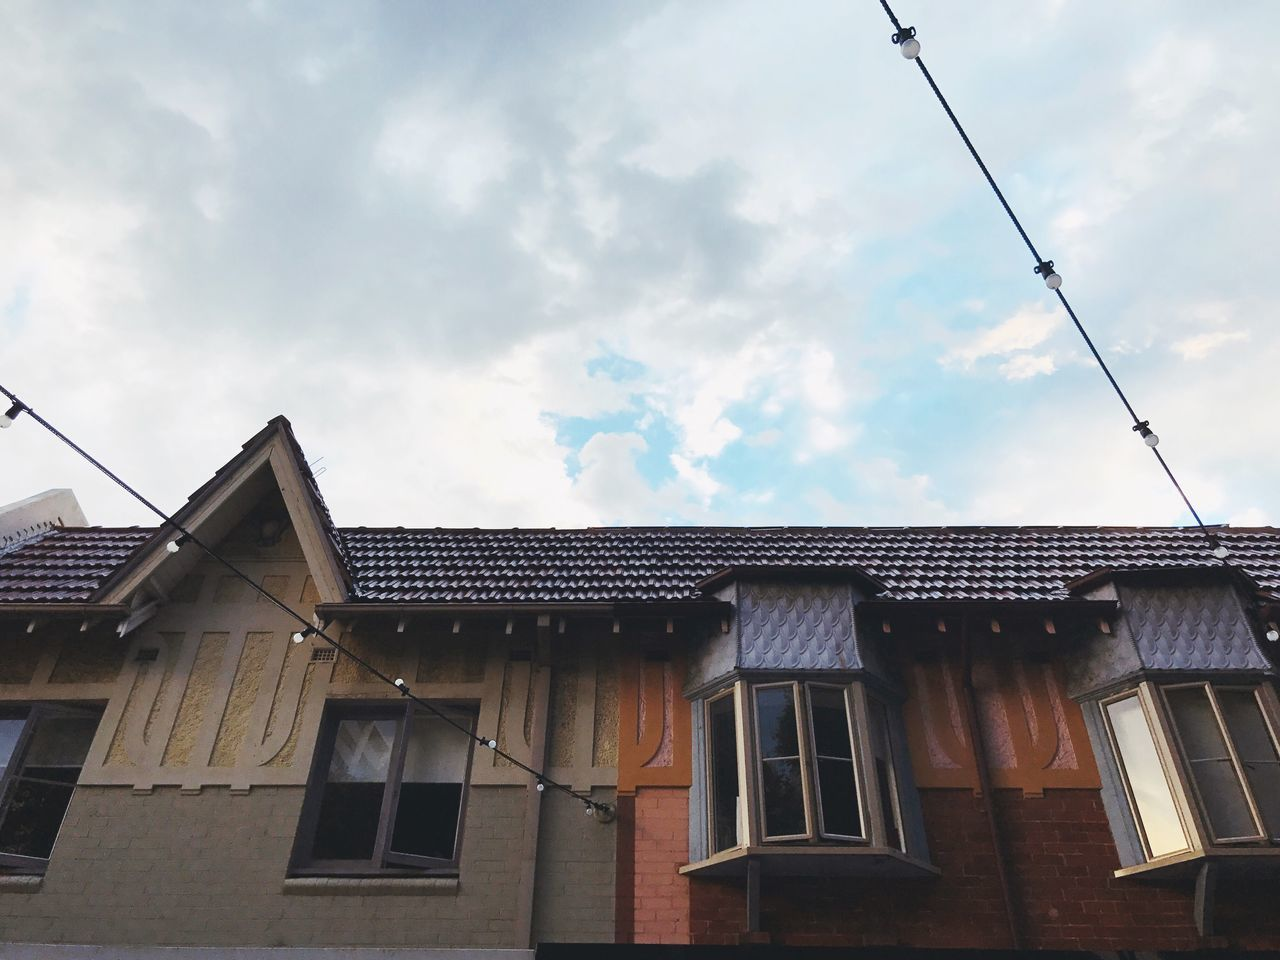 Building Exterior Architecture Sky Built Structure Low Angle View House Window Outdoors No People Residential Building Cloud - Sky Day